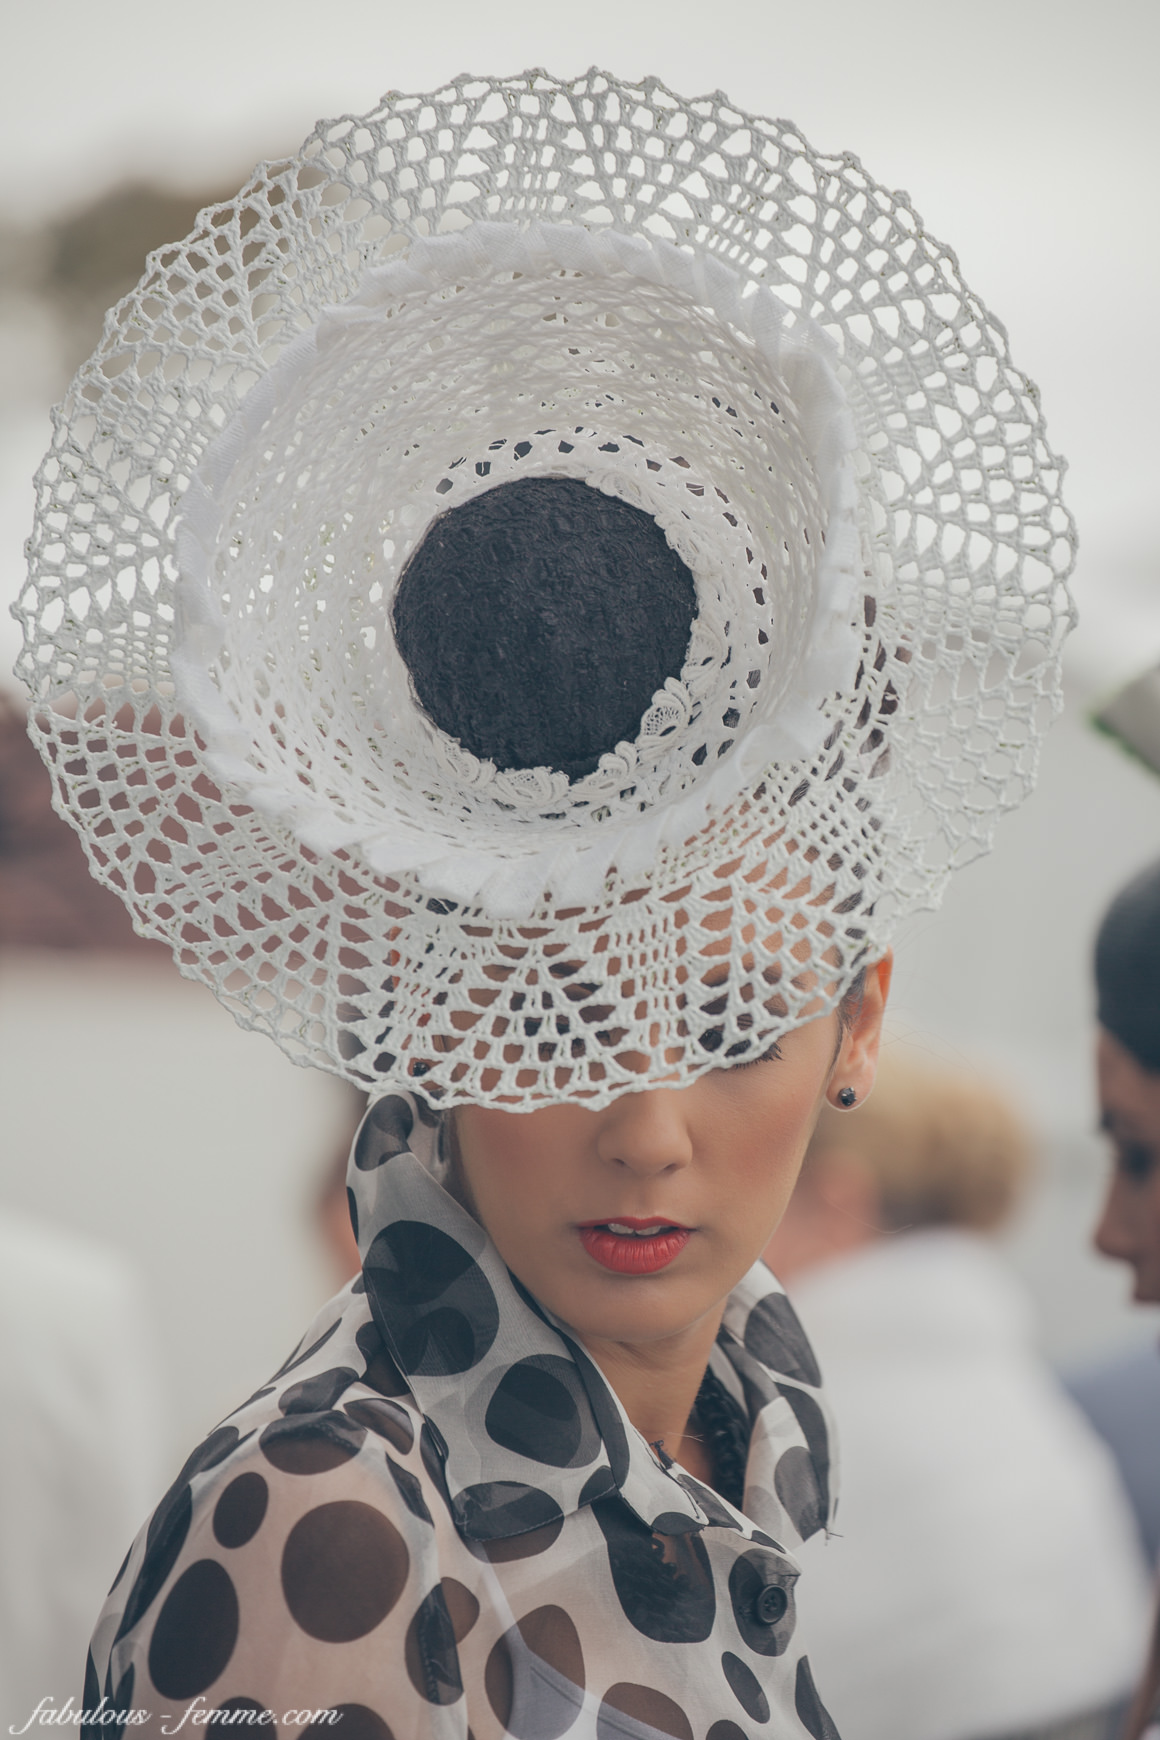 melbourne fashion blog - blogger spring racing carnival